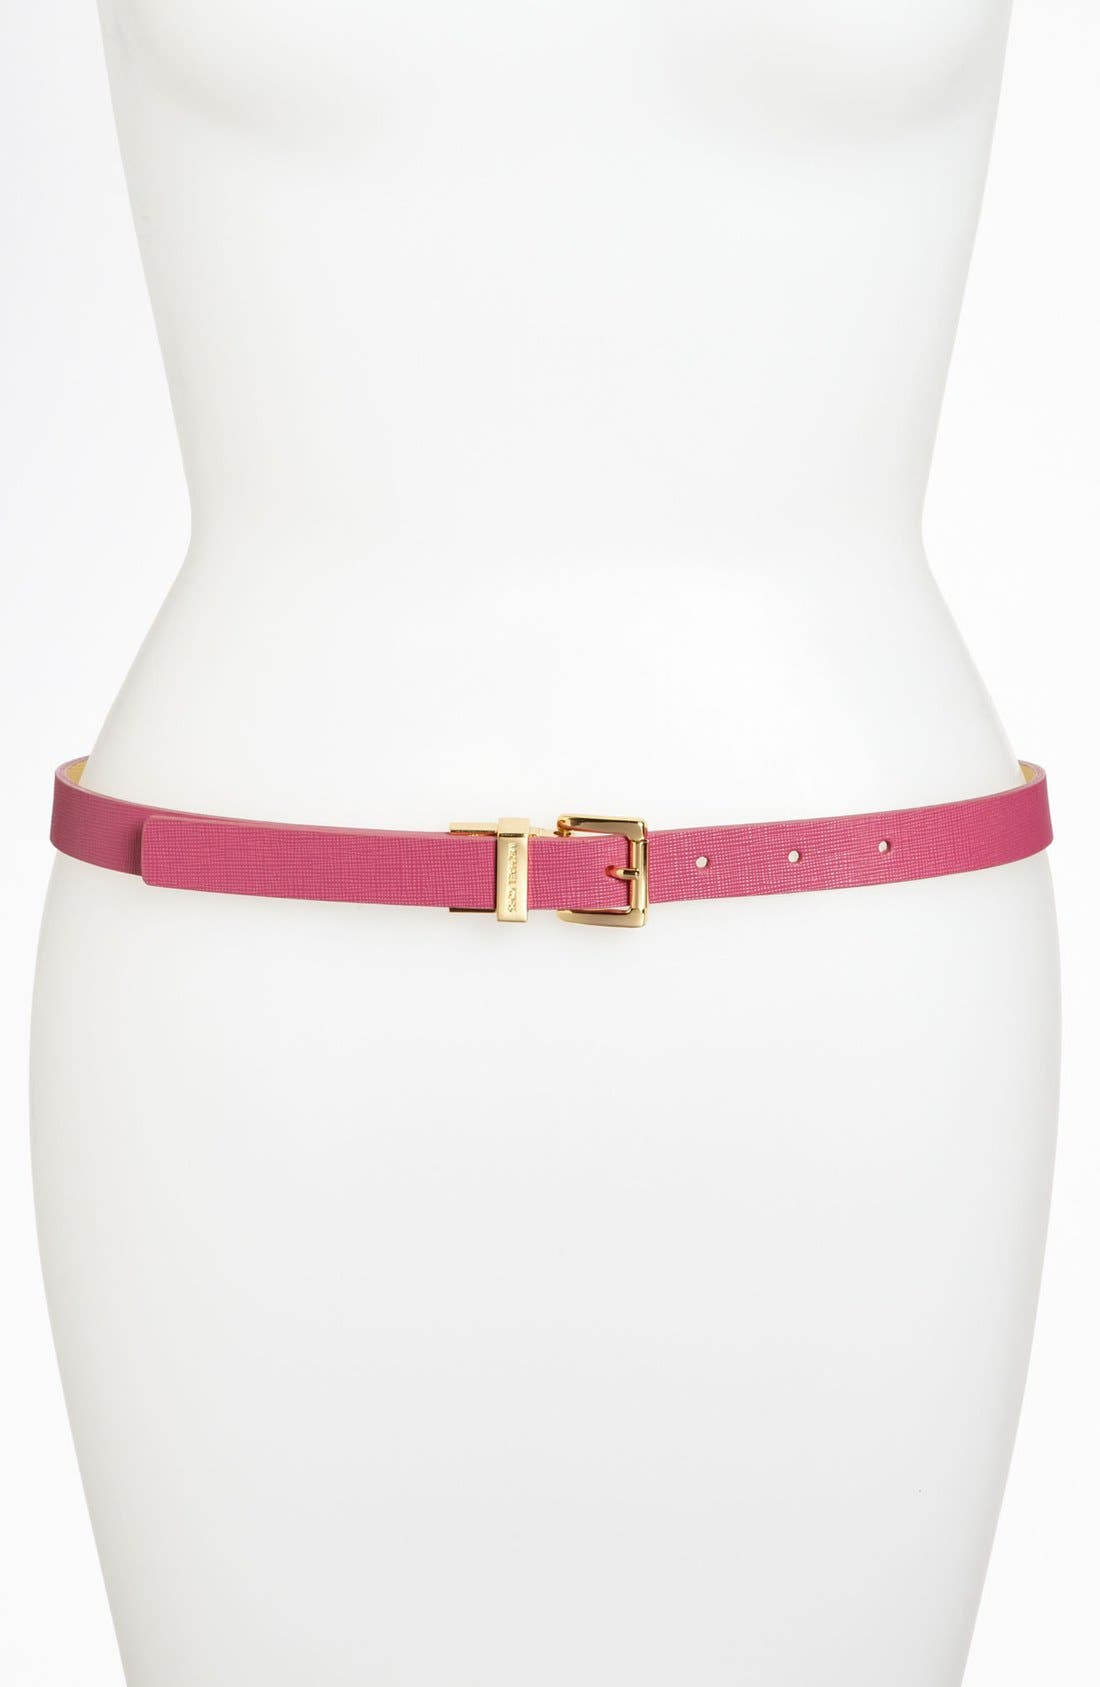 Alternate Image 1 Selected - MICHAEL Michael Kors Reversible Belt